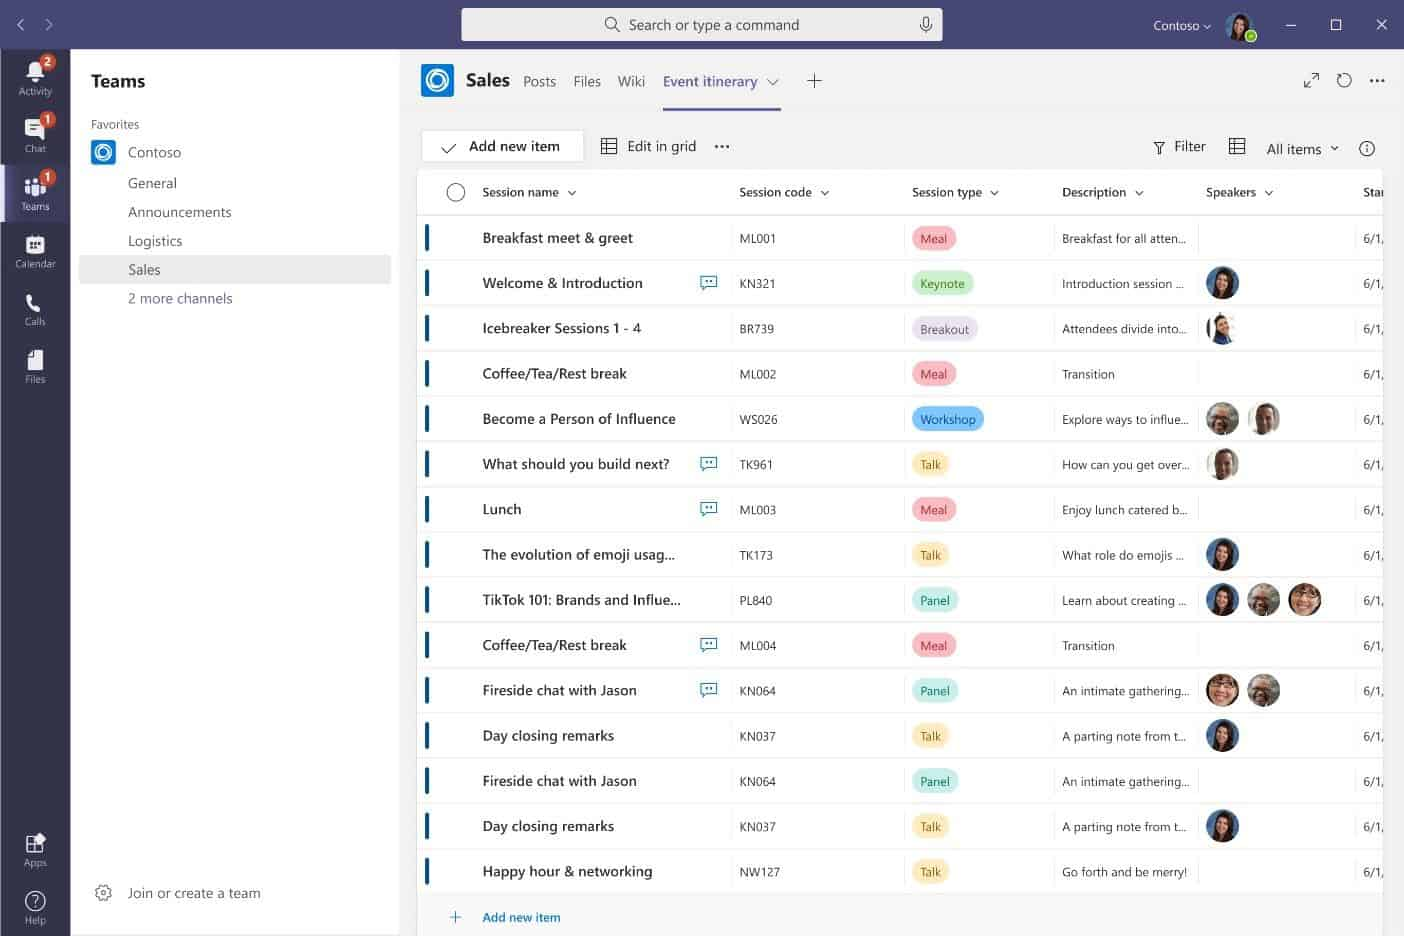 Customize Microsoft Lists in Teams